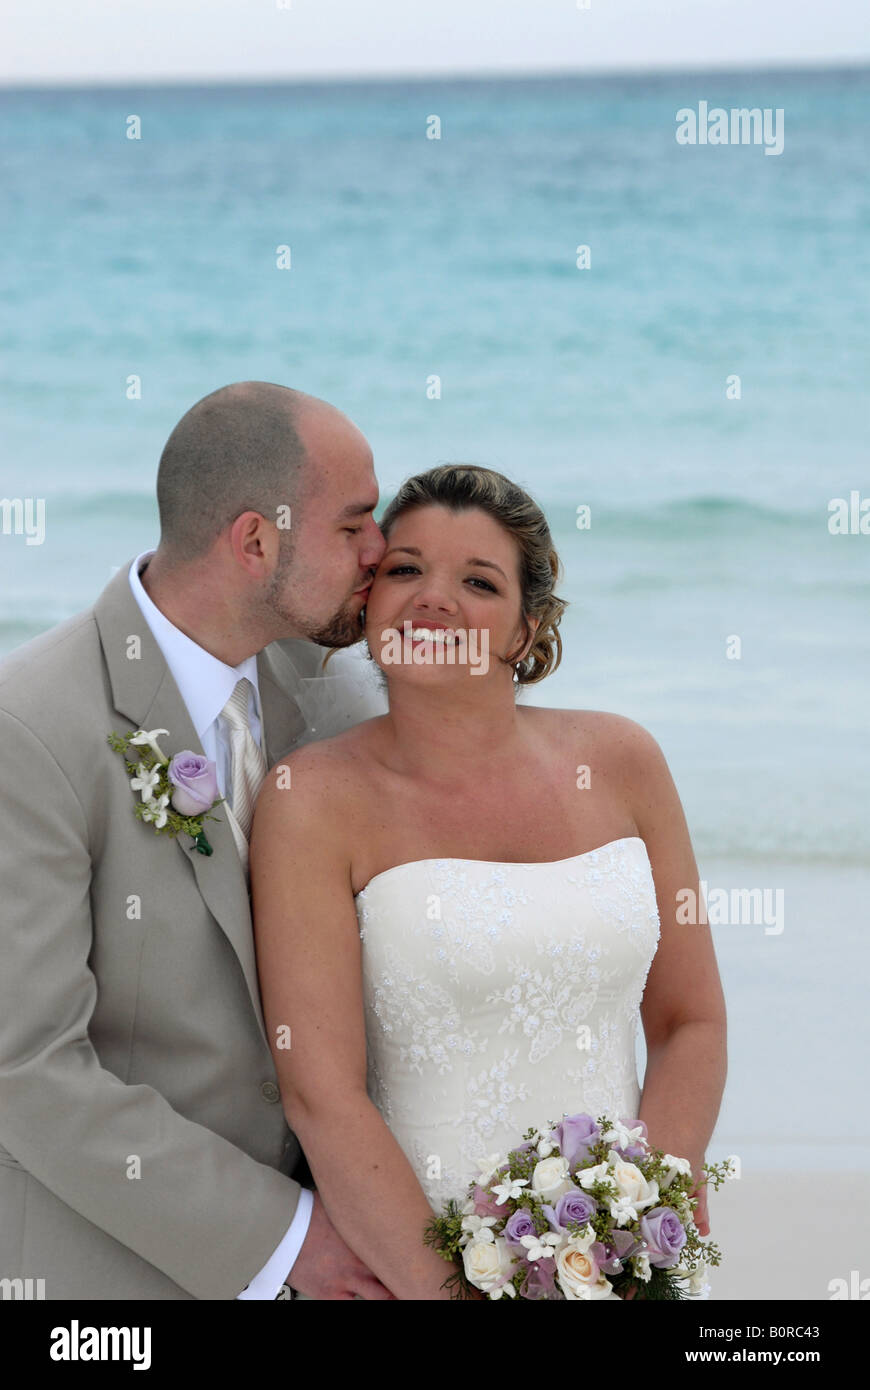 The bride in an ivory wedding dress and groom in a sand colored ...